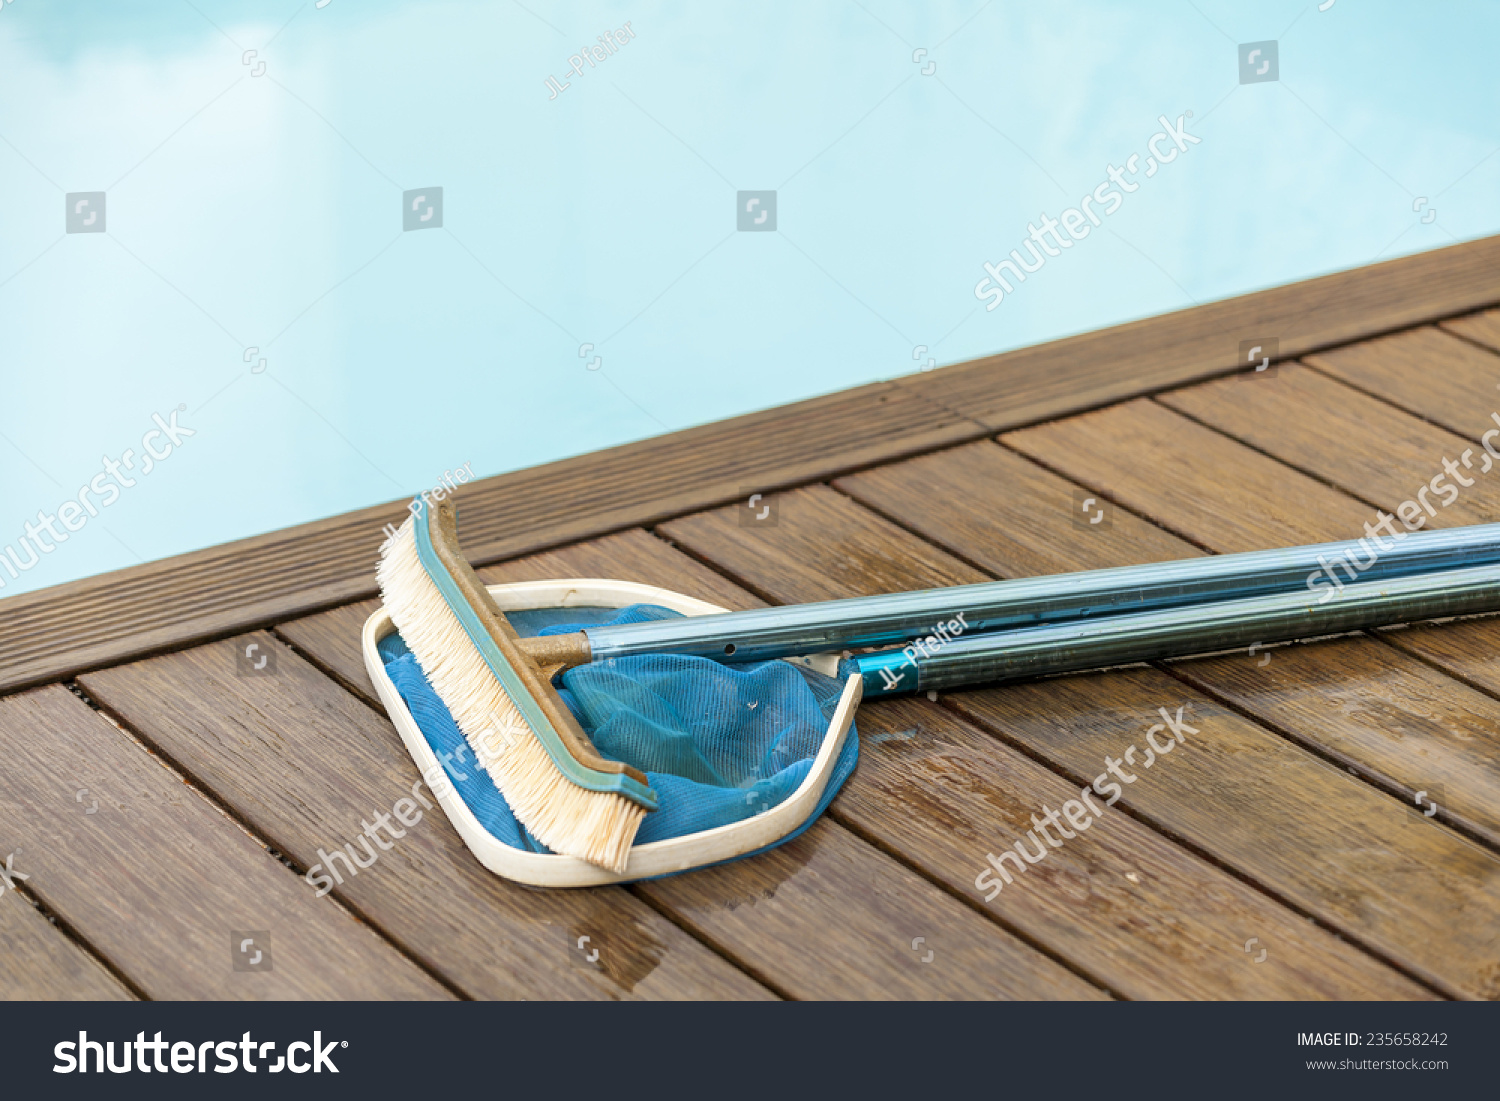 Wall brush leaf skimmer maintenance tools stock photo for Pool deck design tool